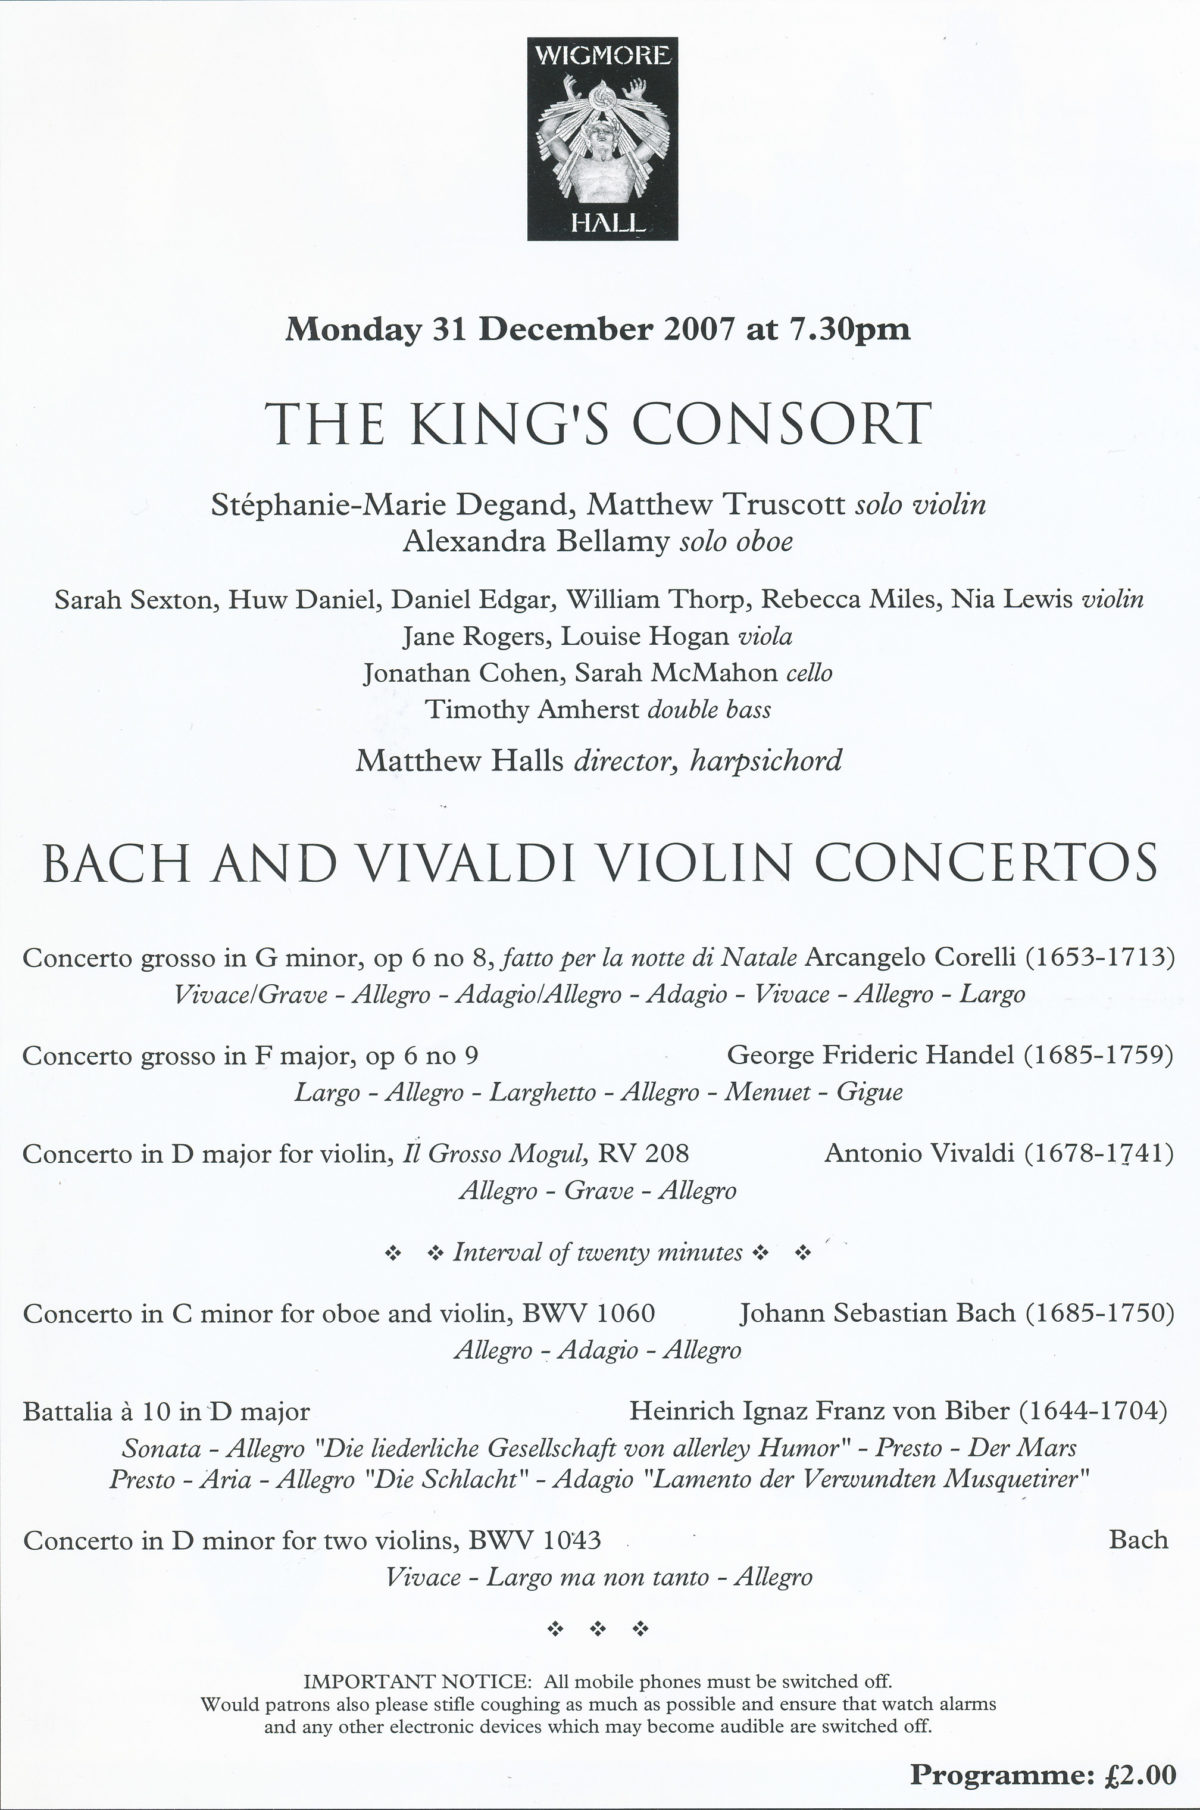 The King's Consort, Bach and Vivaldi Violin Concertos